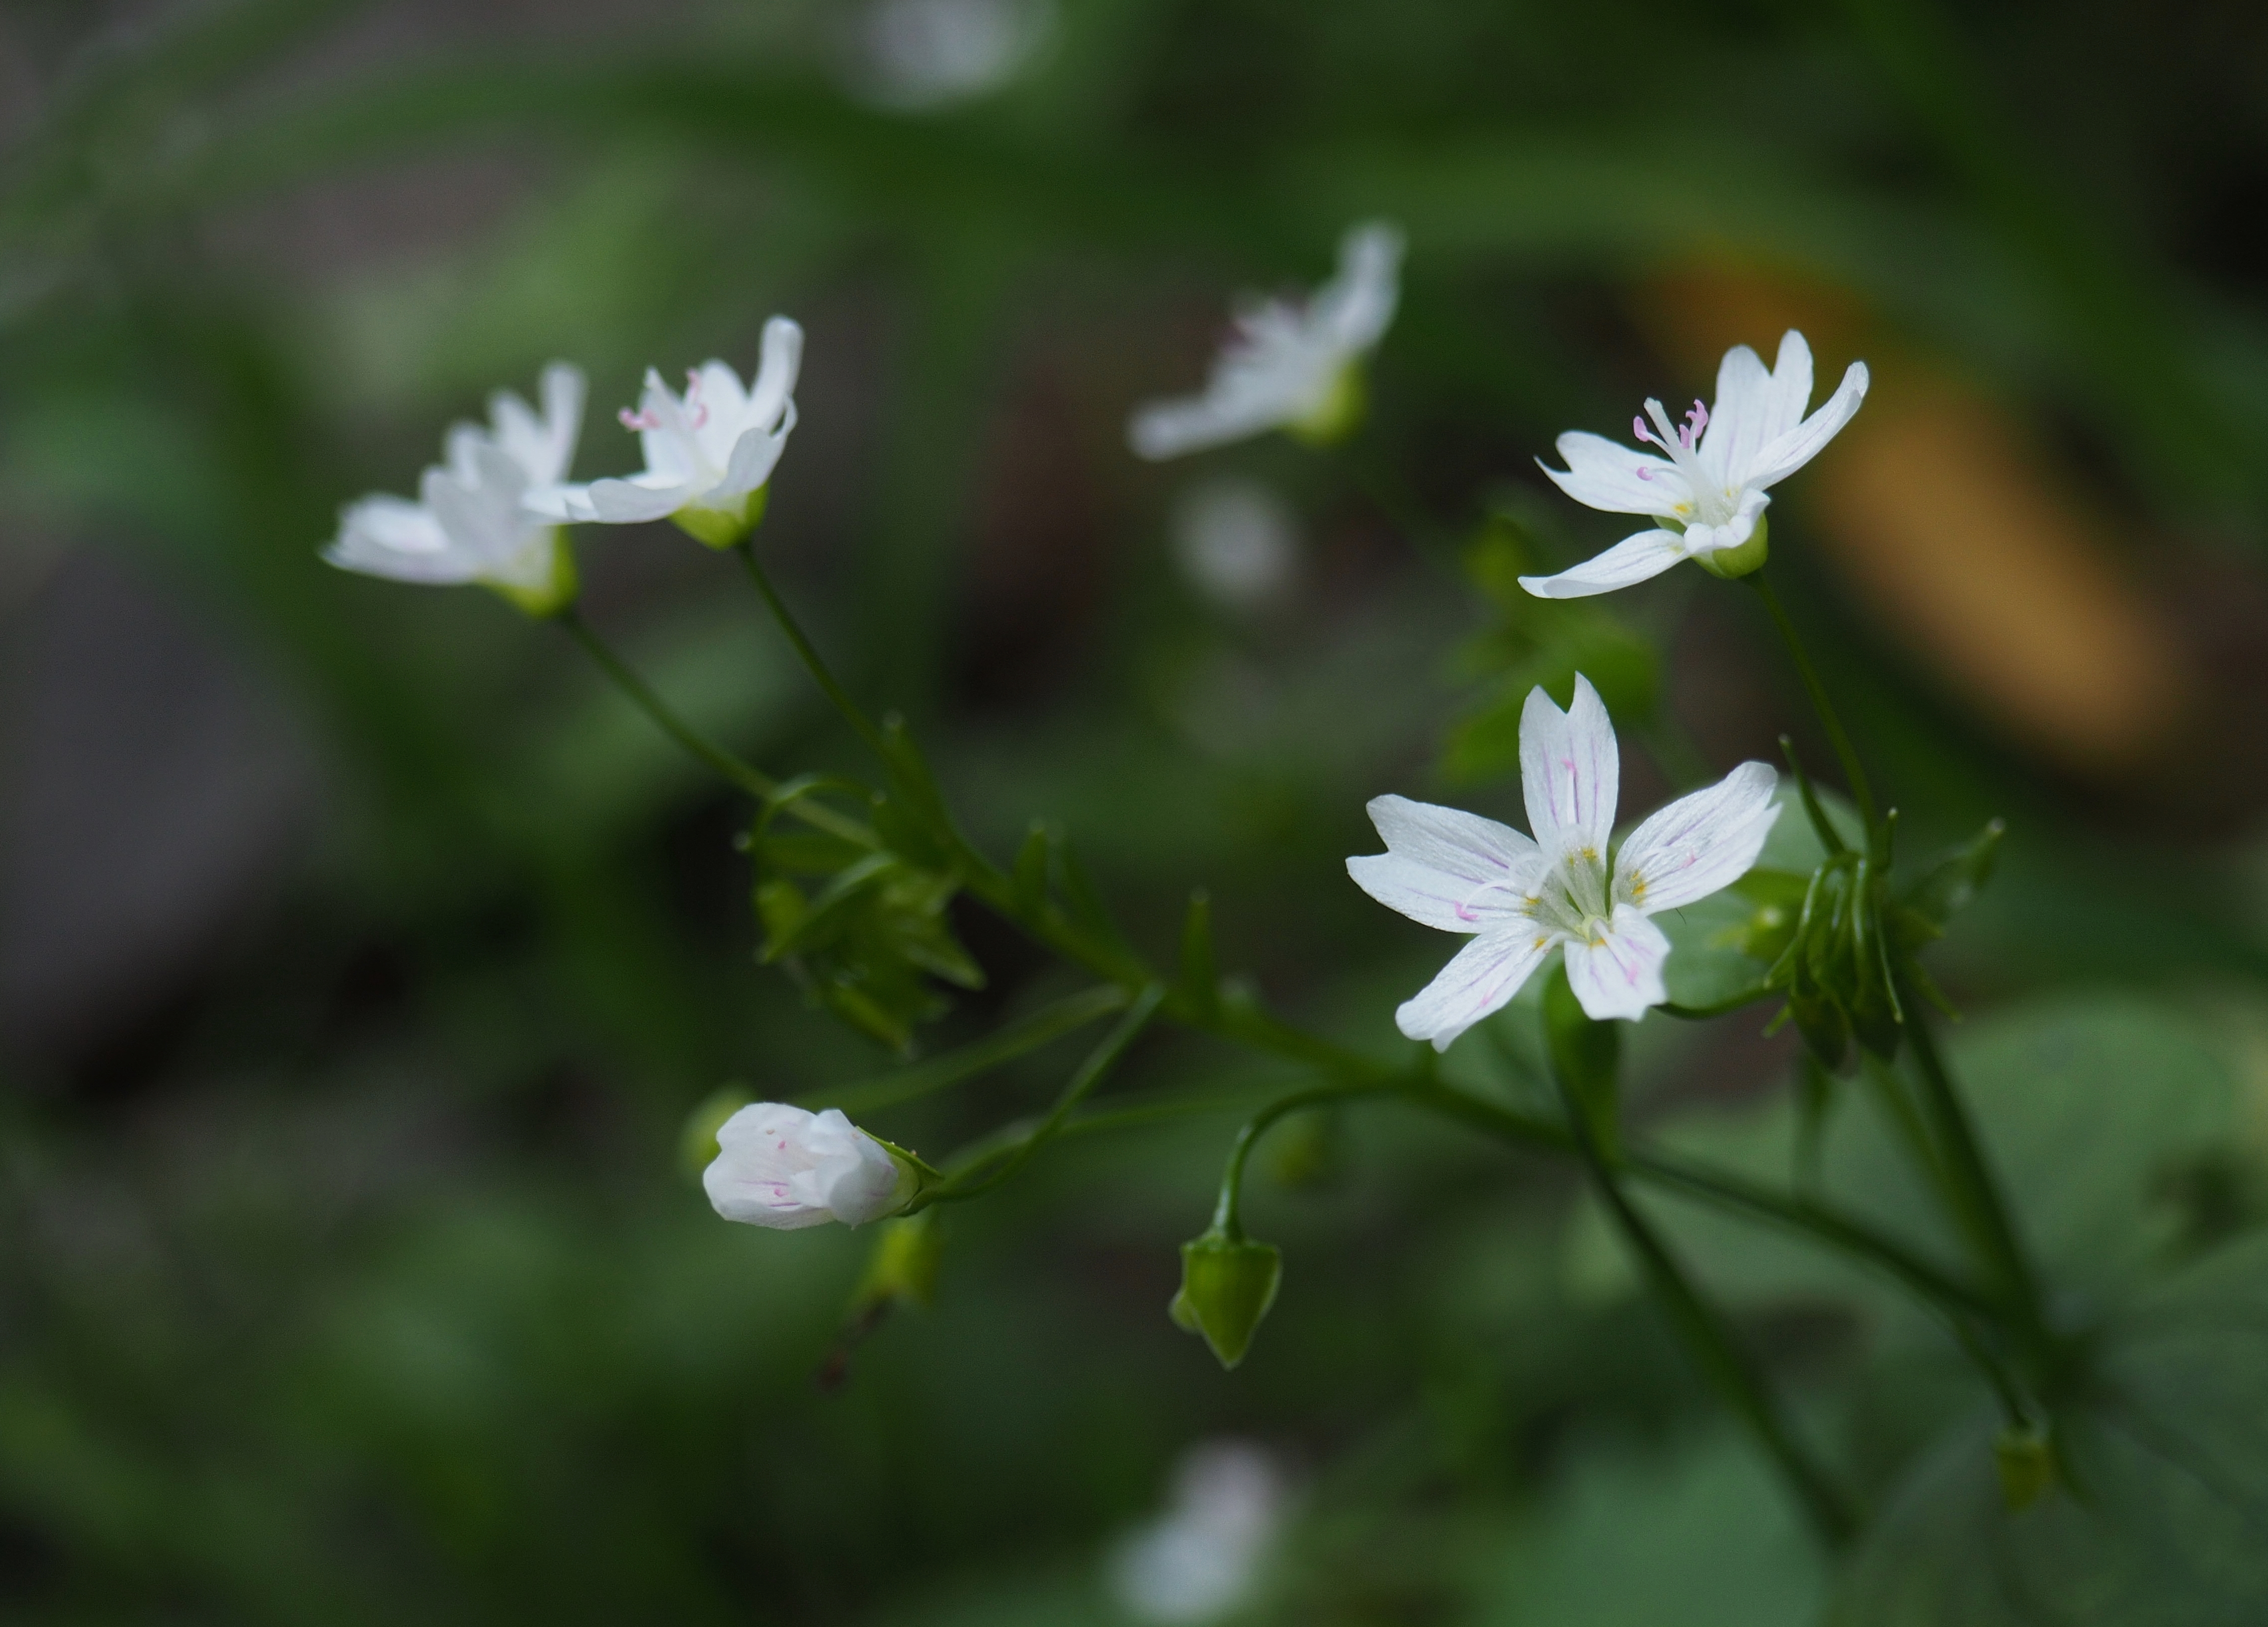 Throughout the shadowy woodland where little else blooms, starry-eyed Siberian springbeauty (Claytonia sibrica) brightens the forest gloom. Mount Washington Trail, July 30, 2016.